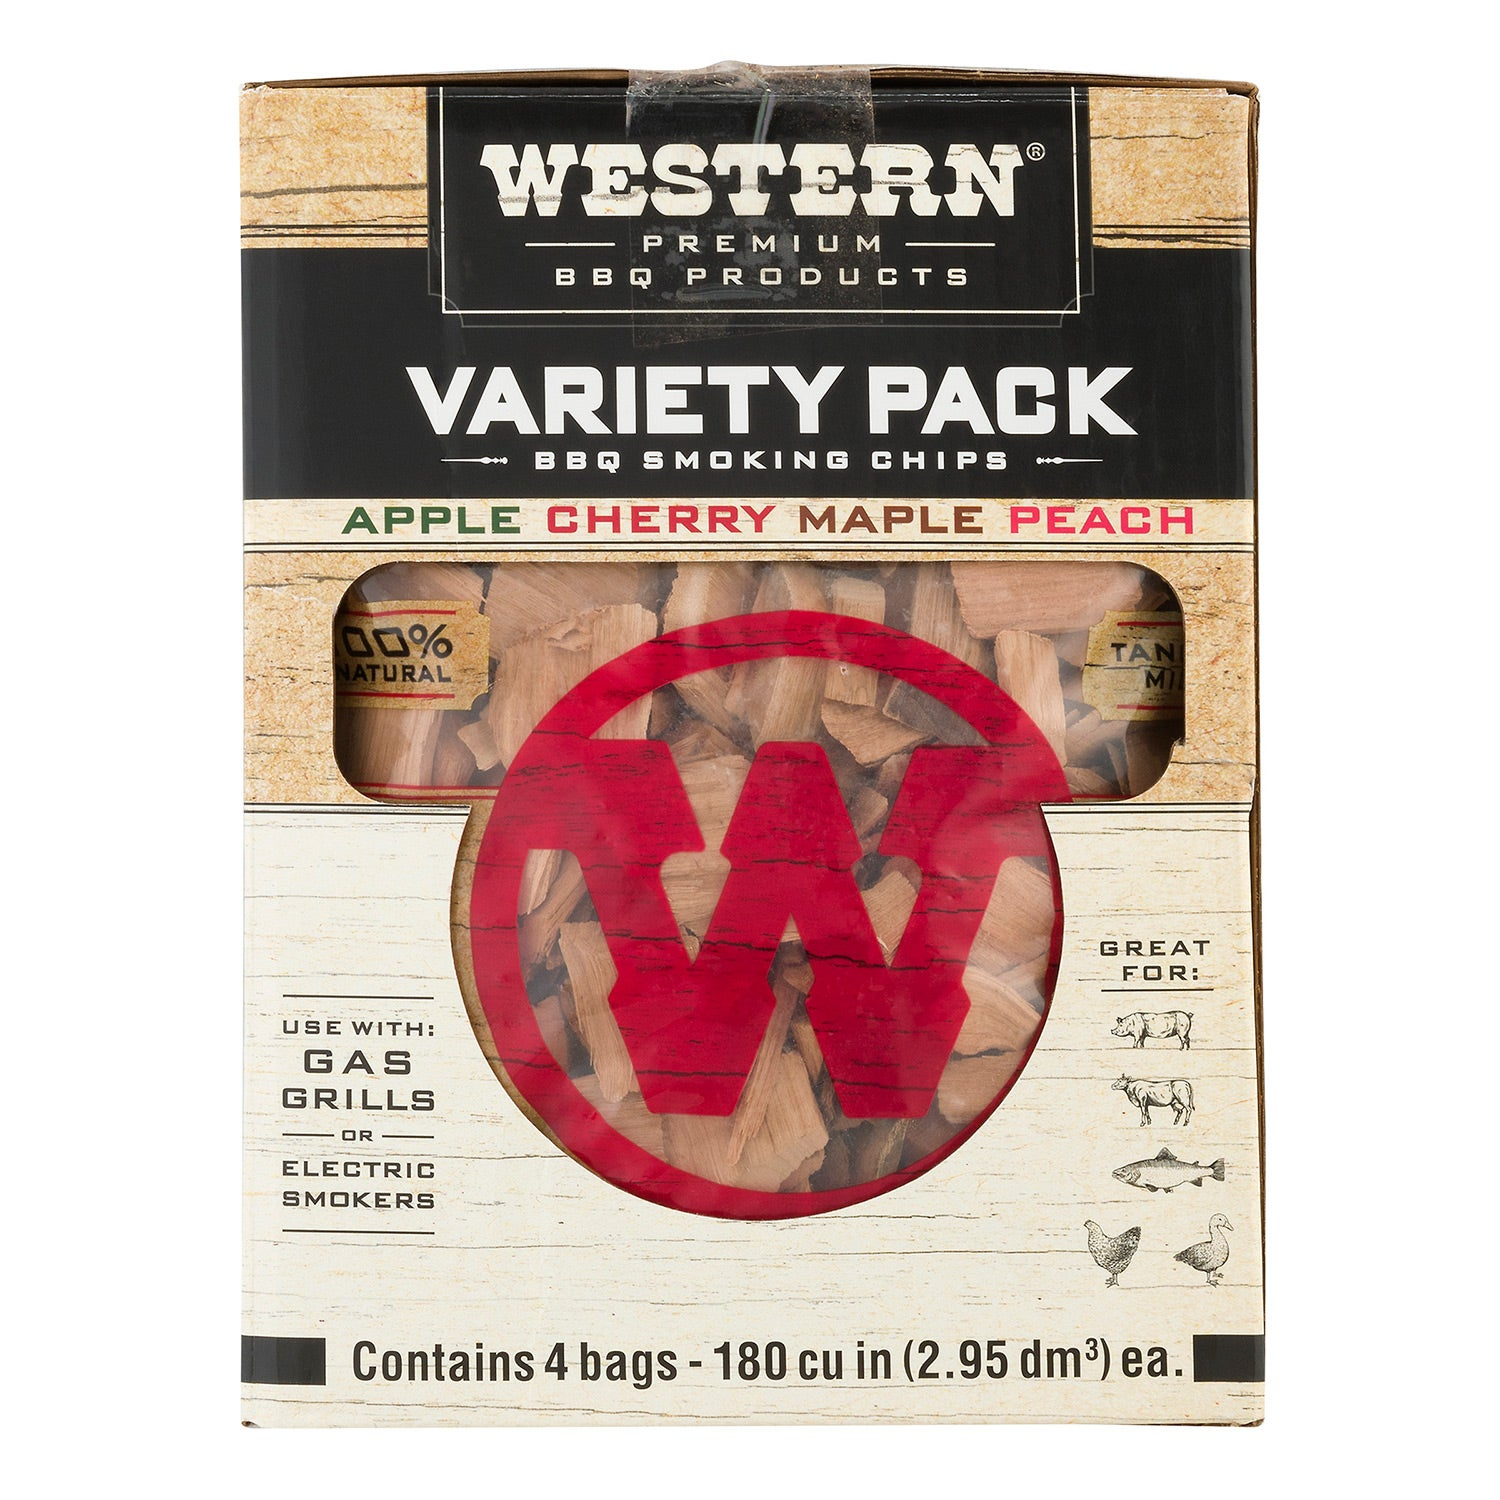 Western BBQ Products Smoking Chips Variety Pack